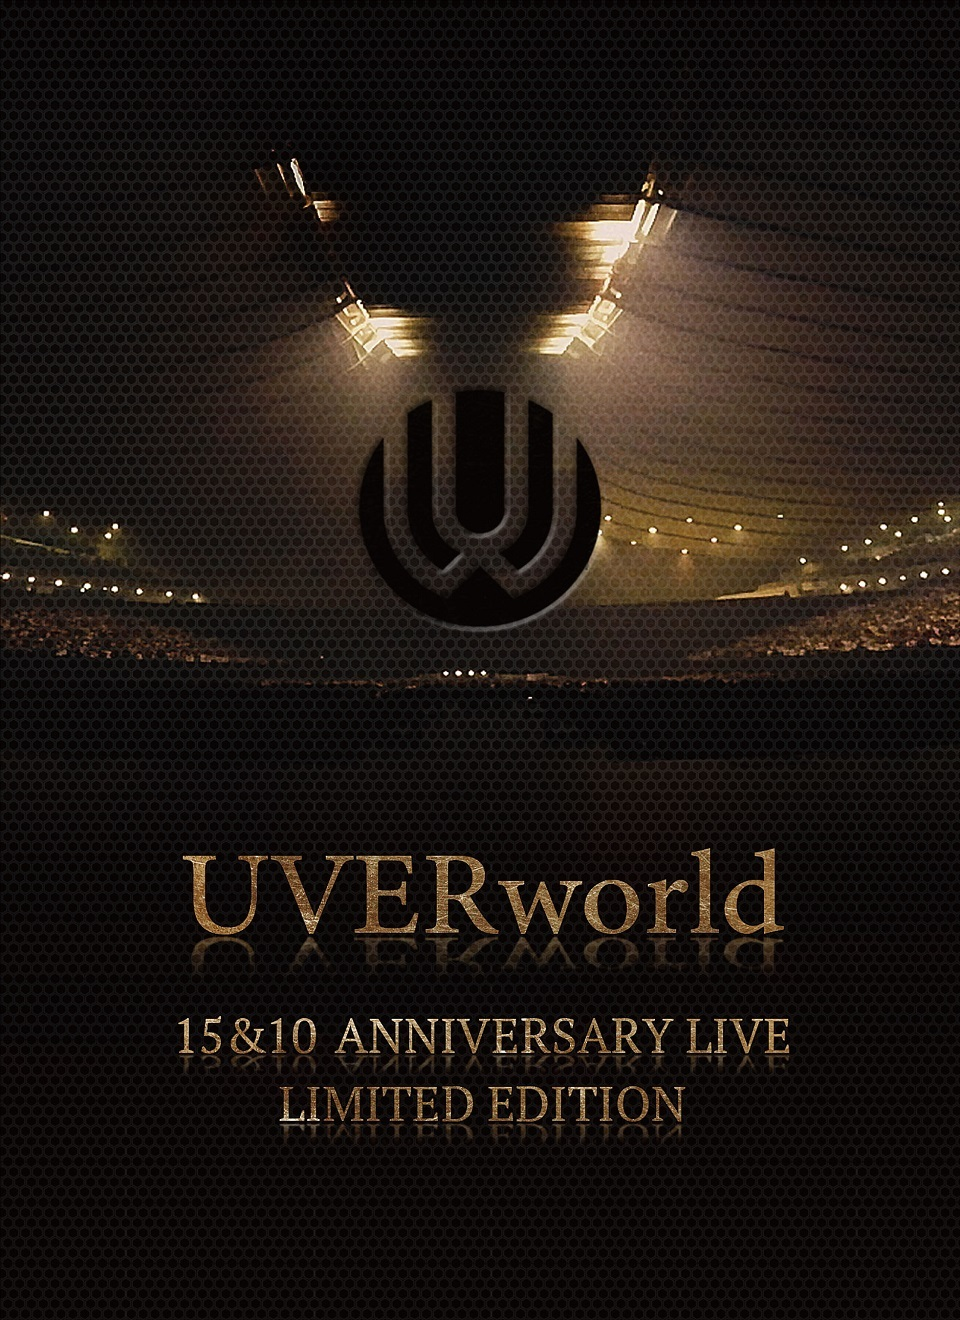 UVERworld 15&10 Anniversary Live LIMITED EDITION